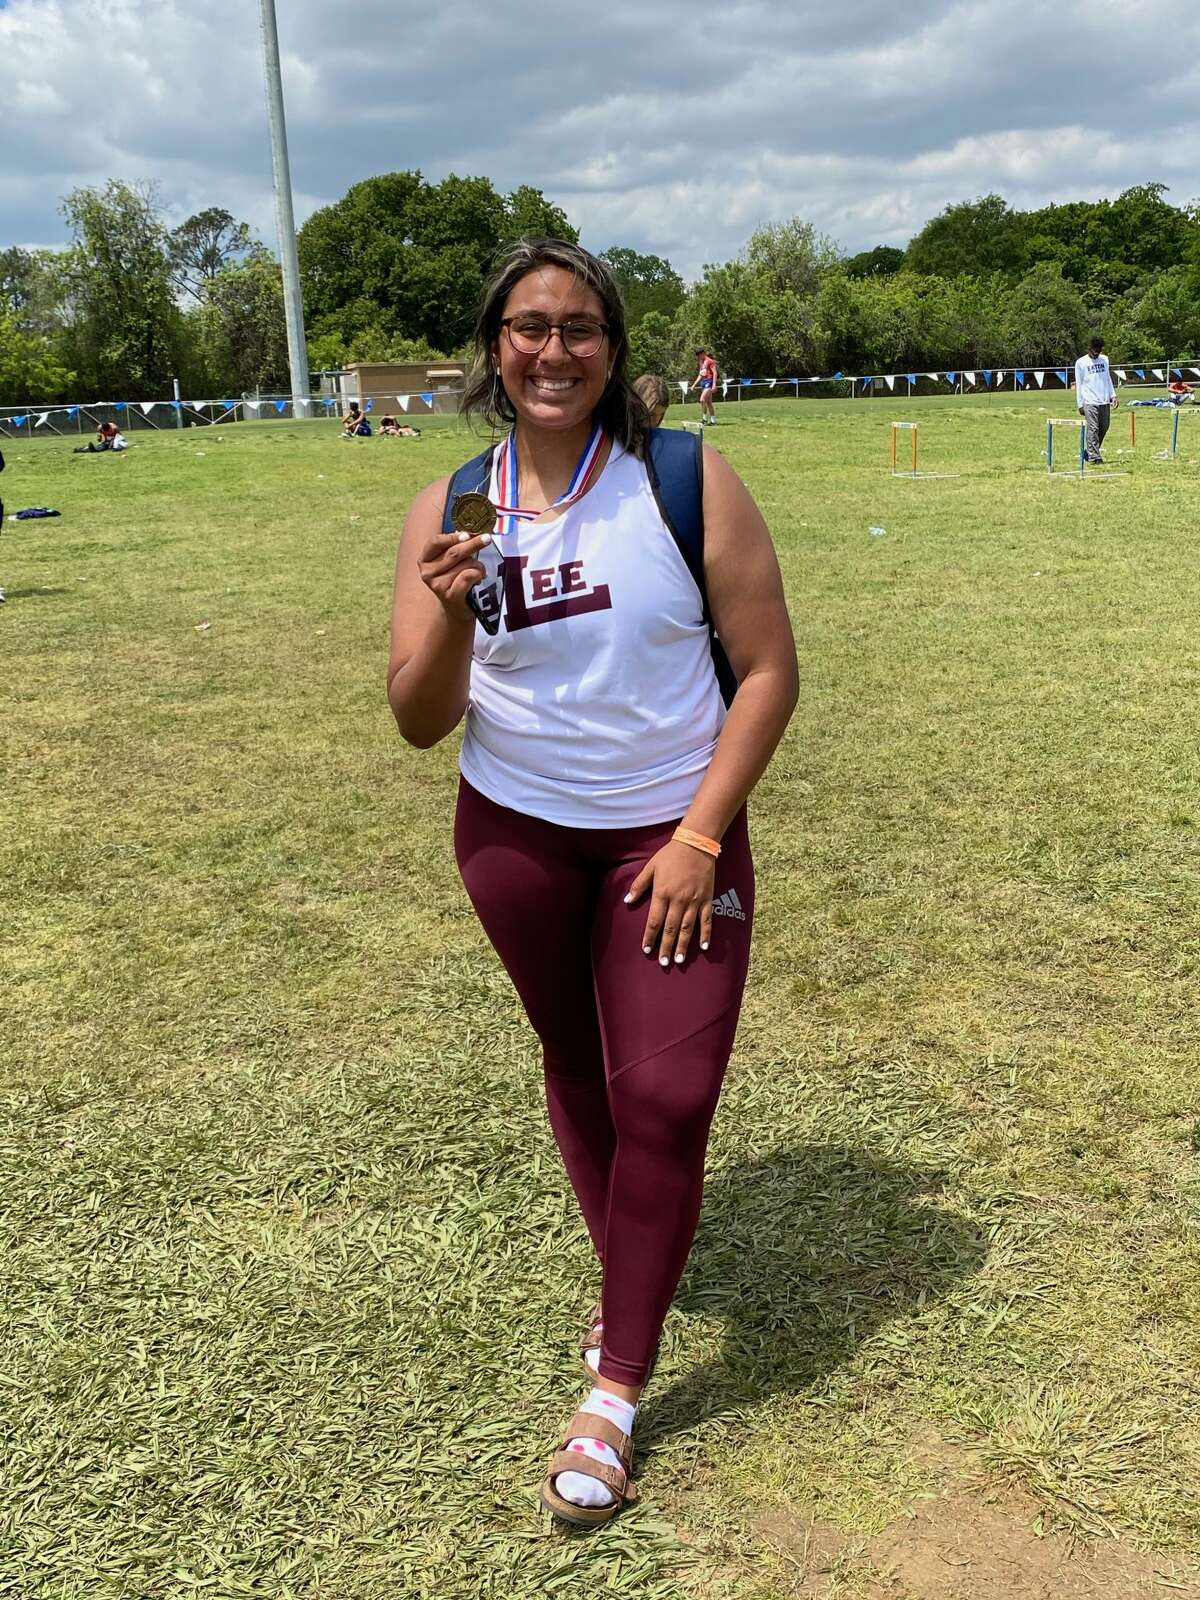 Lee sophomore Leah Acostaposes with her bronze medal after placing third in the girls discus at the Region I-6A track meet, Saturday in Arlington.